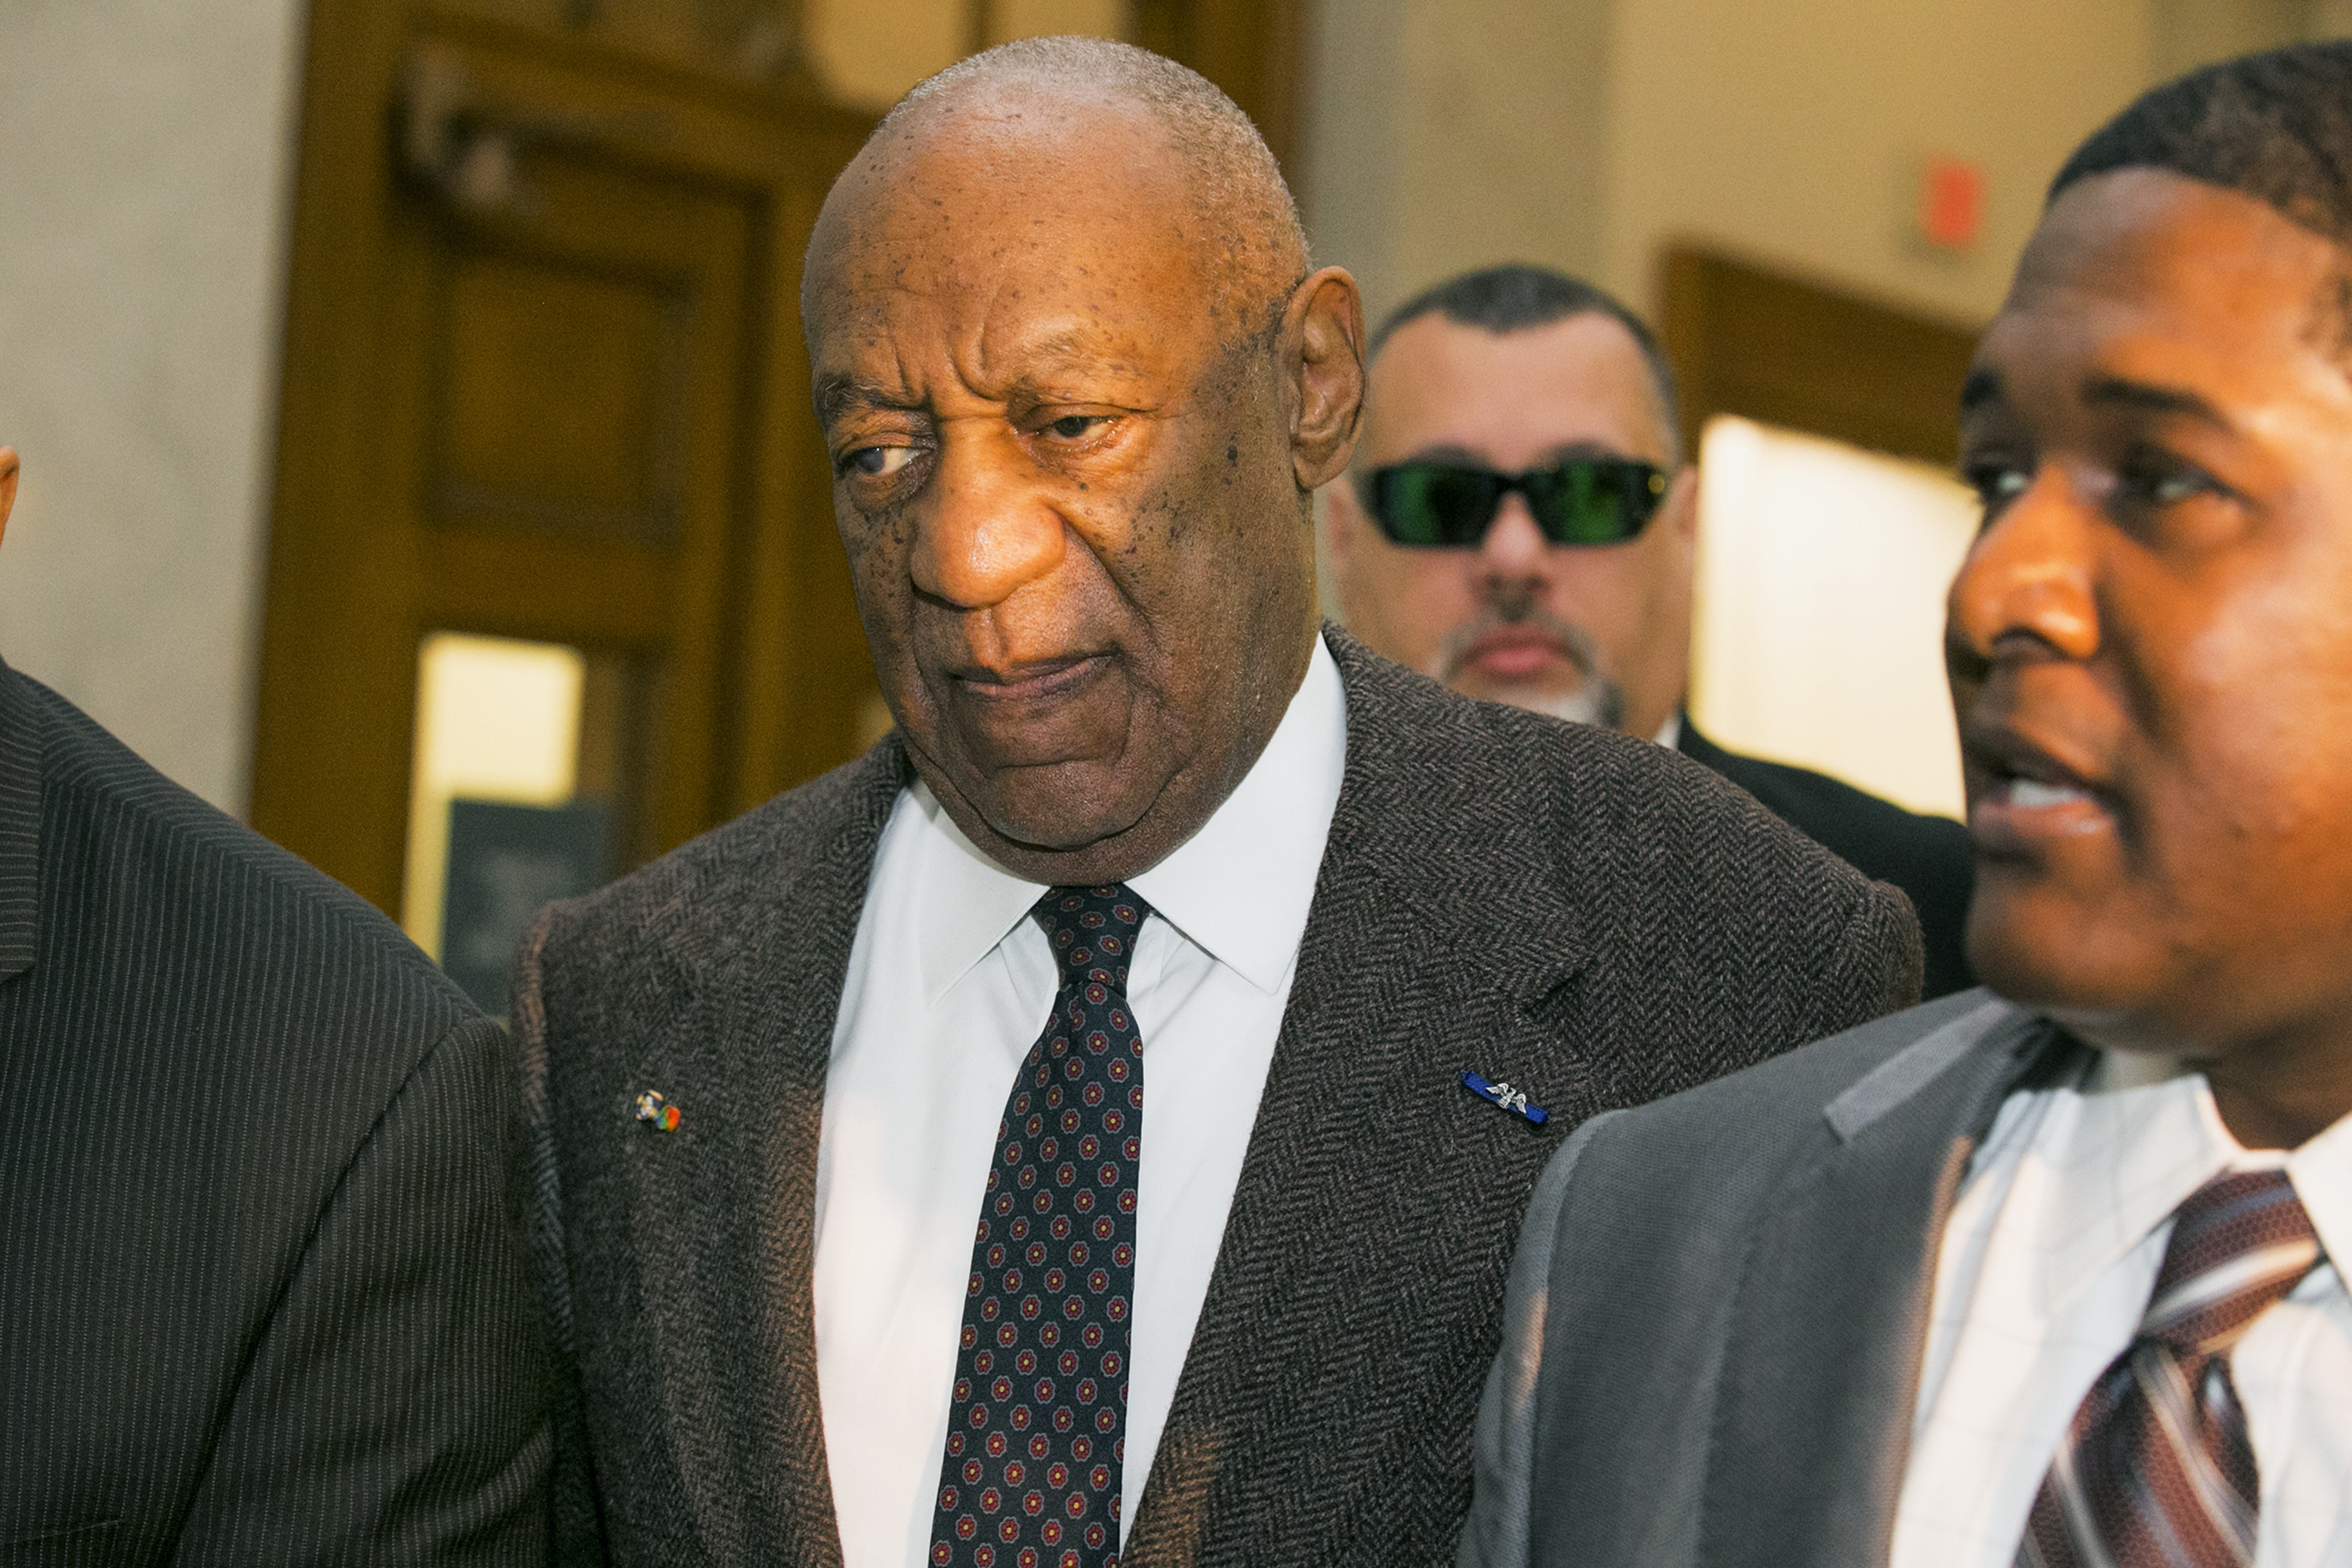 Bill Cosby arrives at the Montgomery County Courthouse Feb. 3, 2016 in Norristown, Pennsylvania. (credit: Ed Hille-Pool/Getty Images)